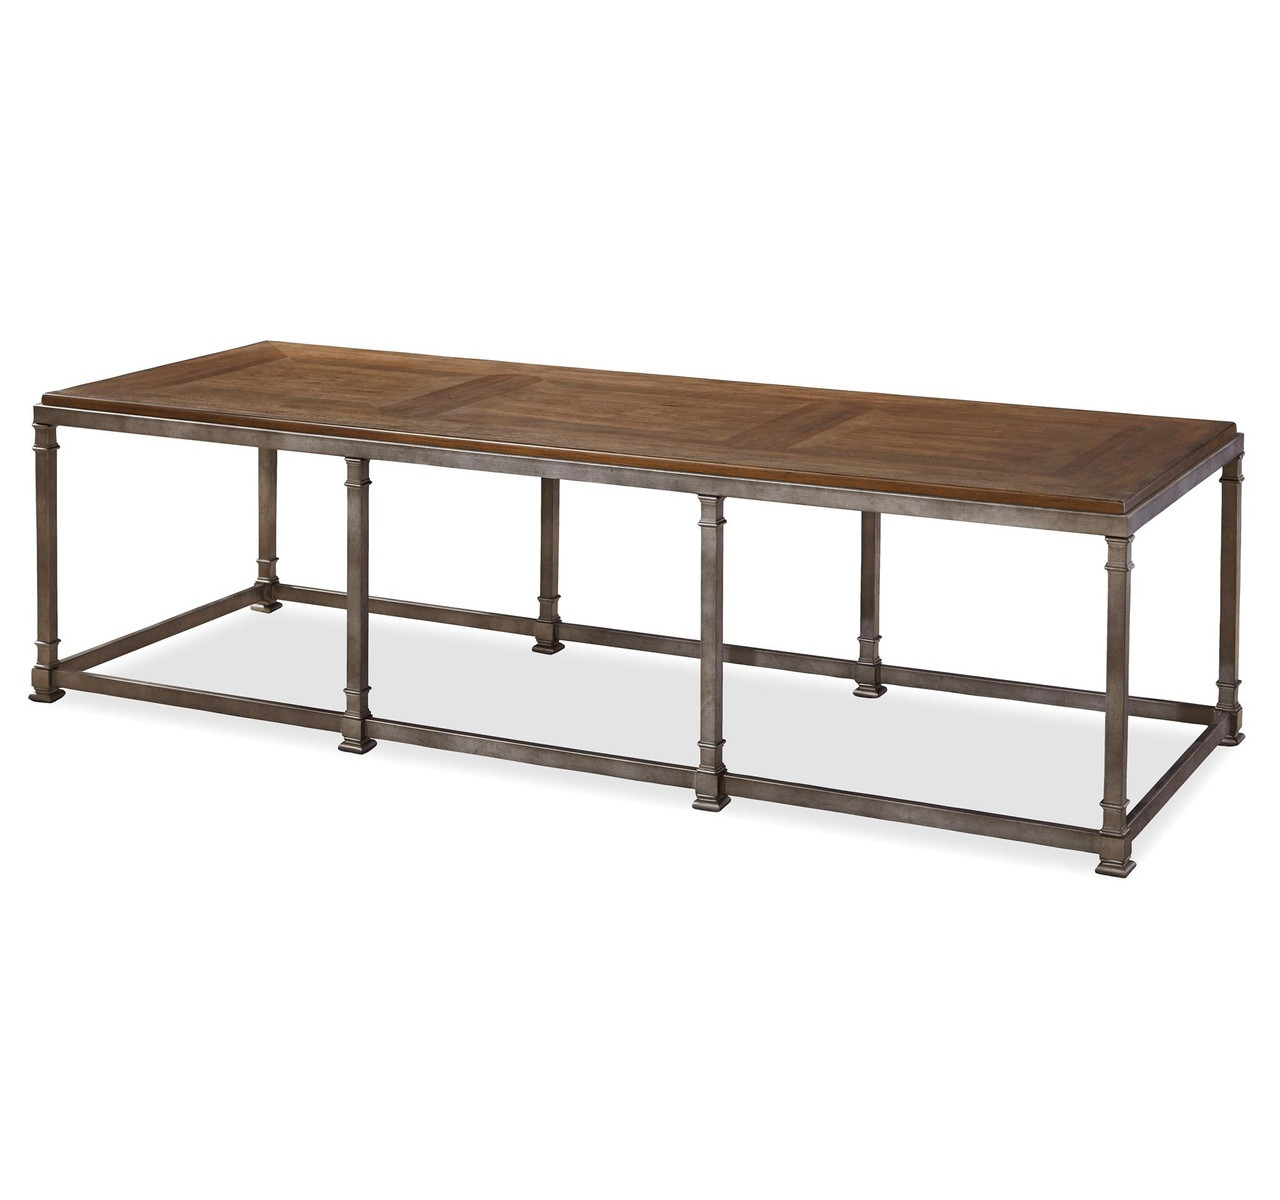 Maison Industrial Metal Leg + Wood Top Large Coffee Table Great Ideas